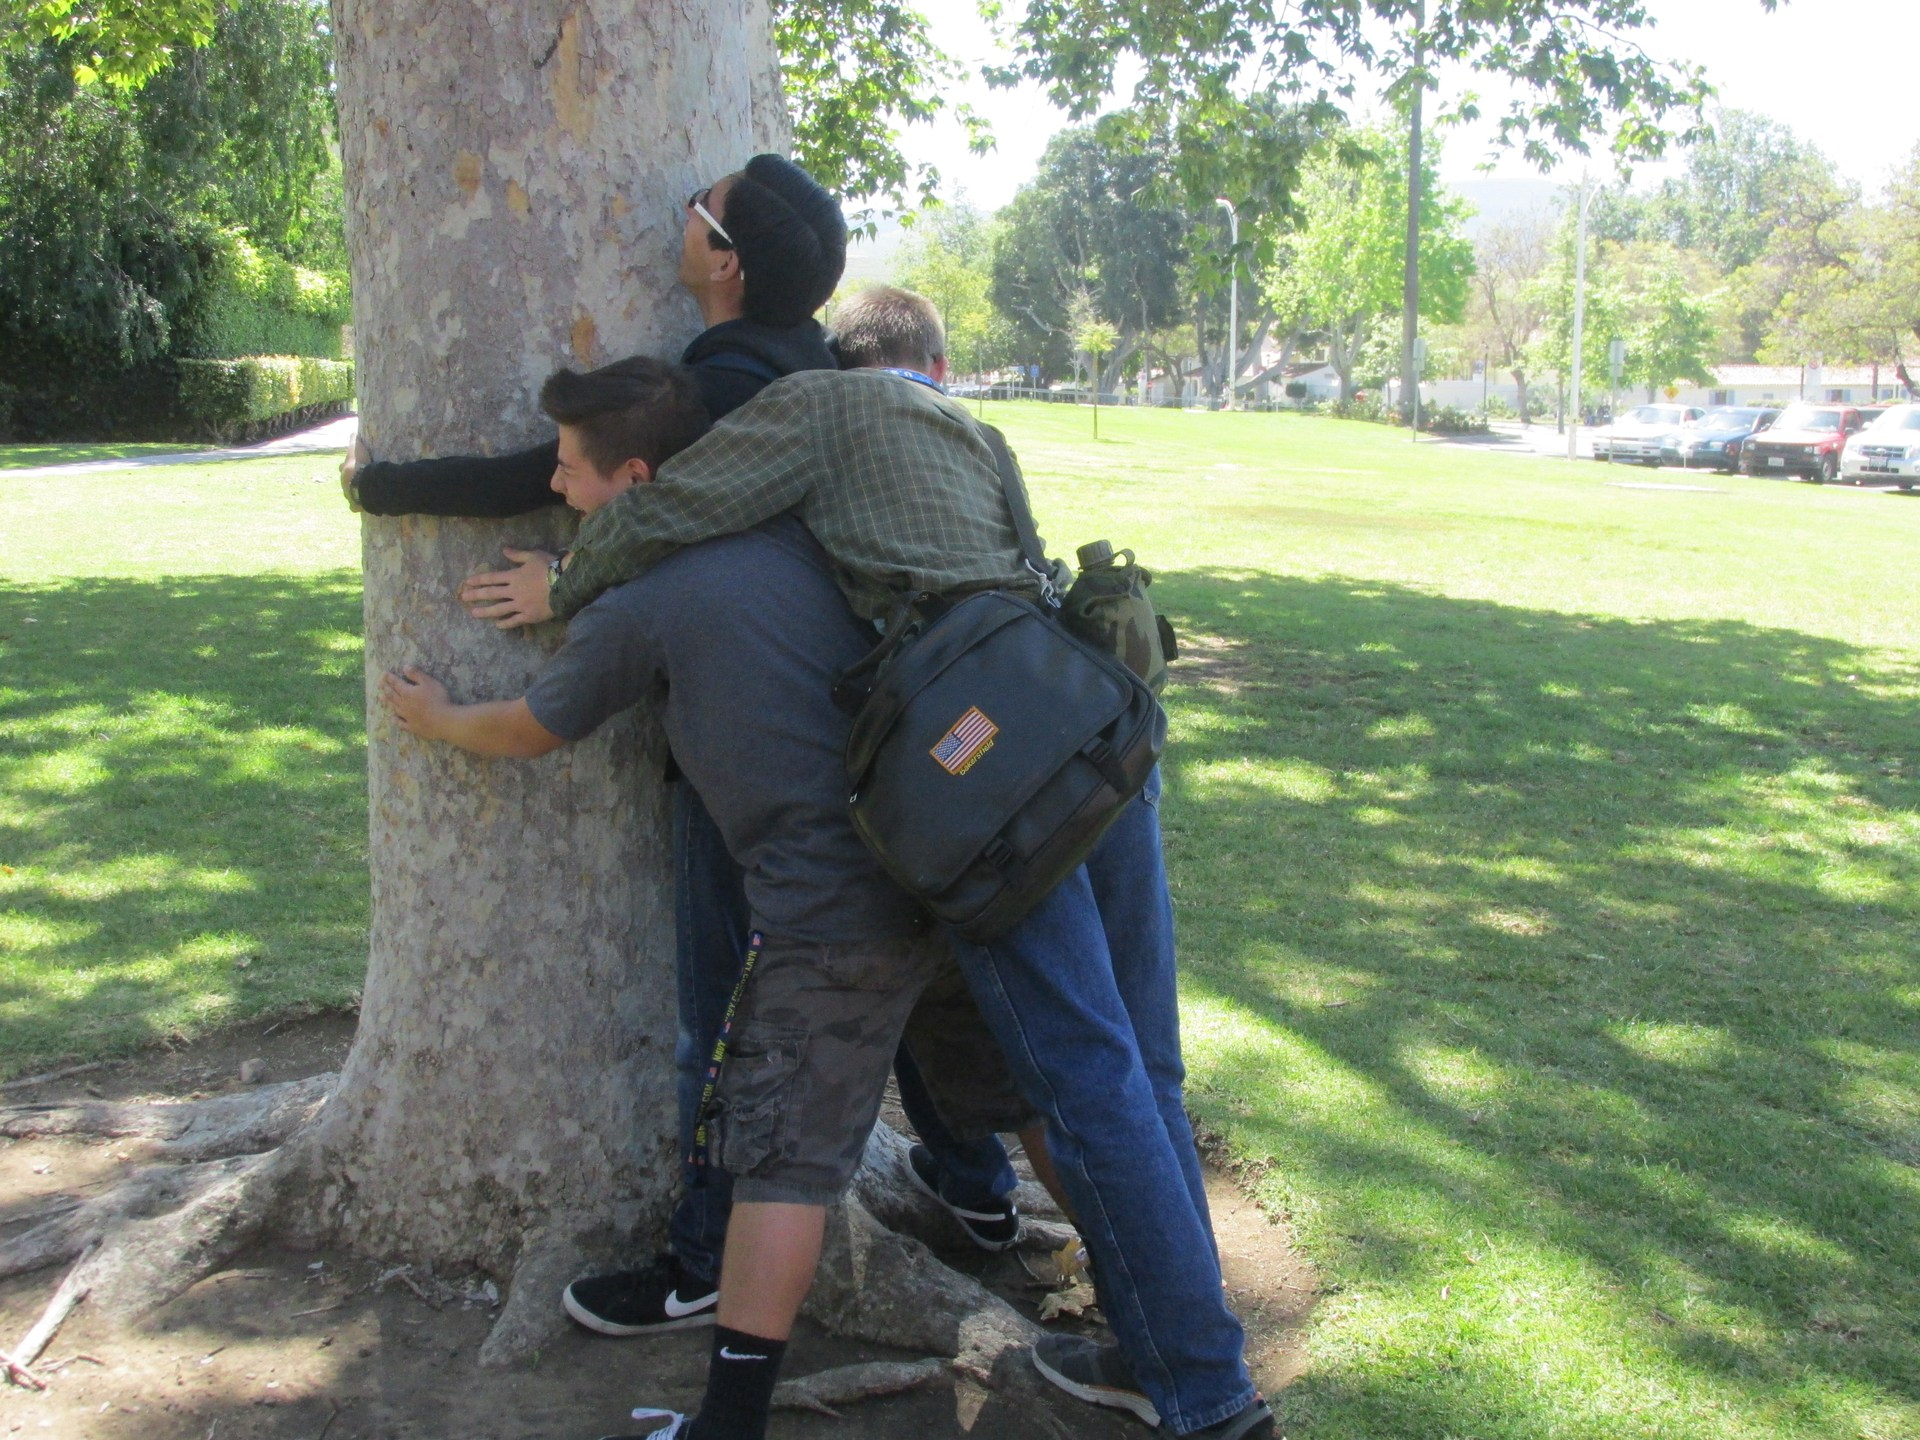 Tree Hug Time